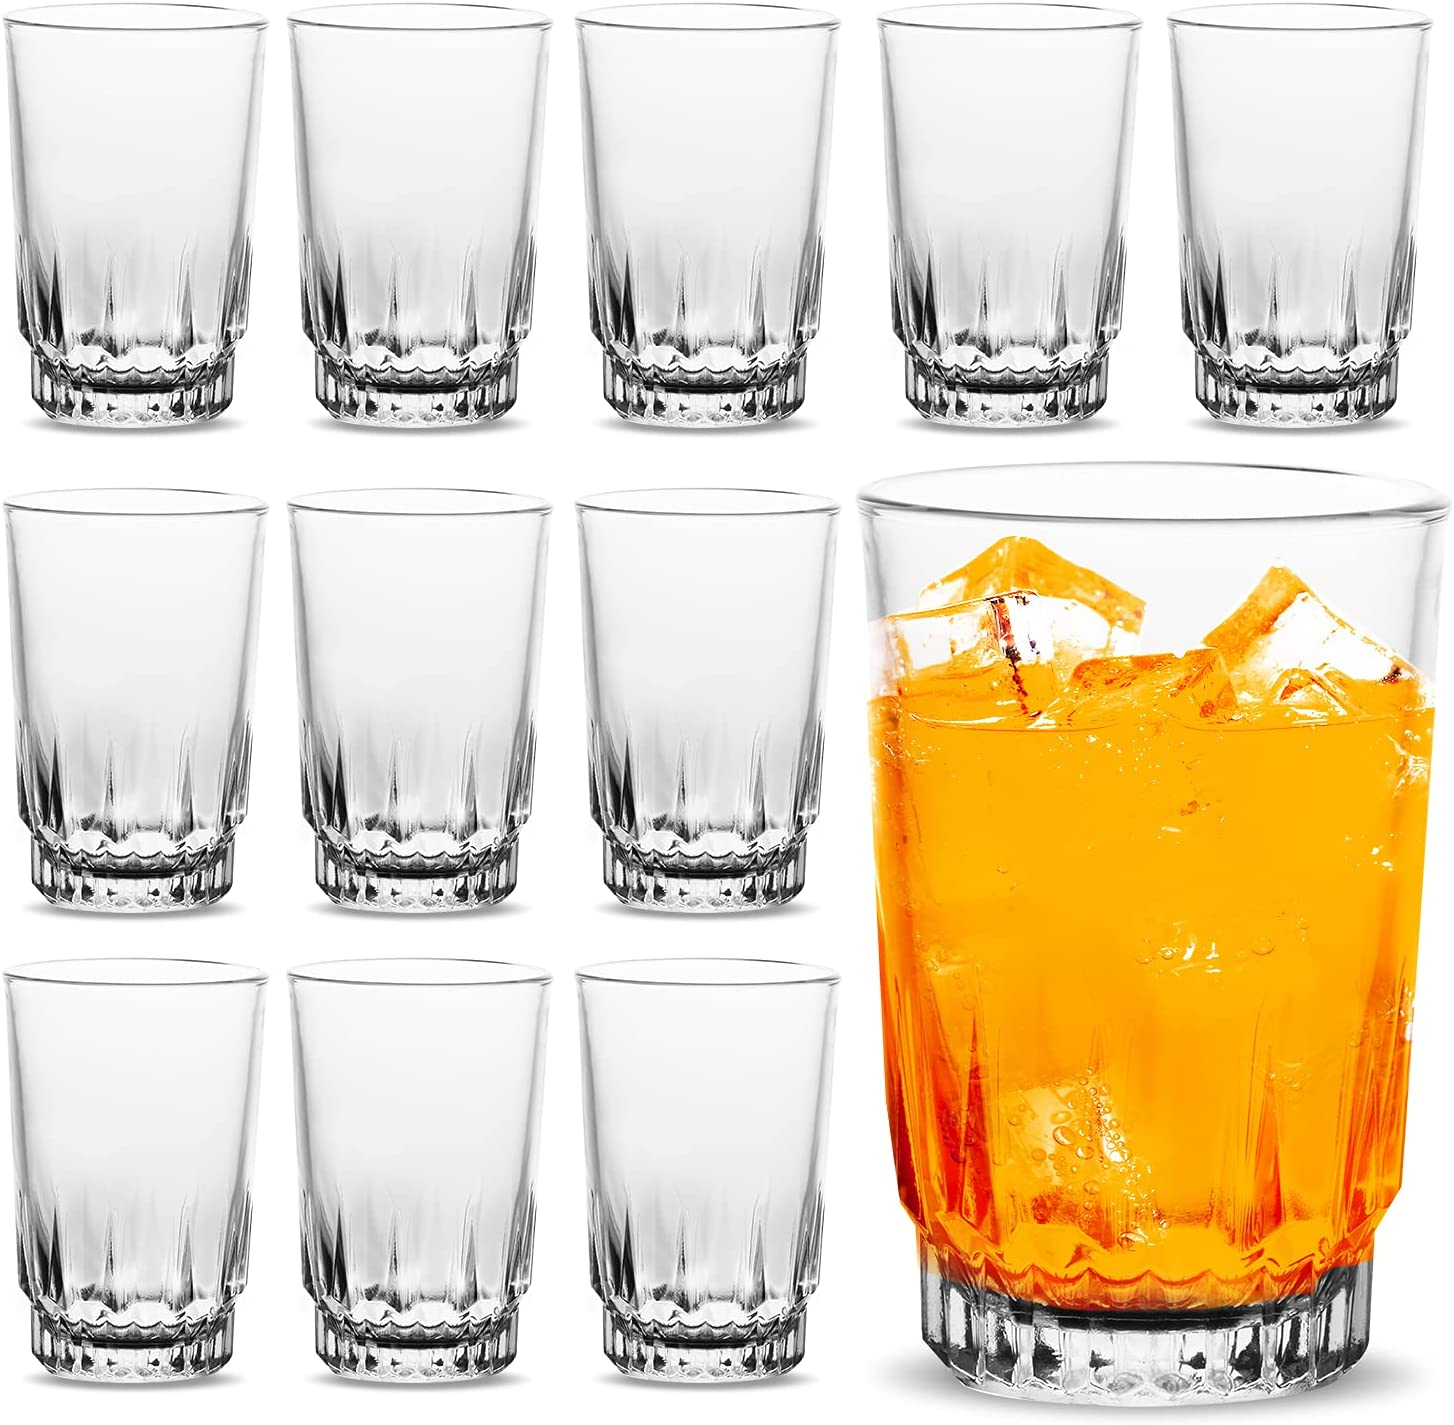 Vikko 5 Year-end gift Attention brand Ounce Juice Glasses: Heavy for O Drinking Base Glassware